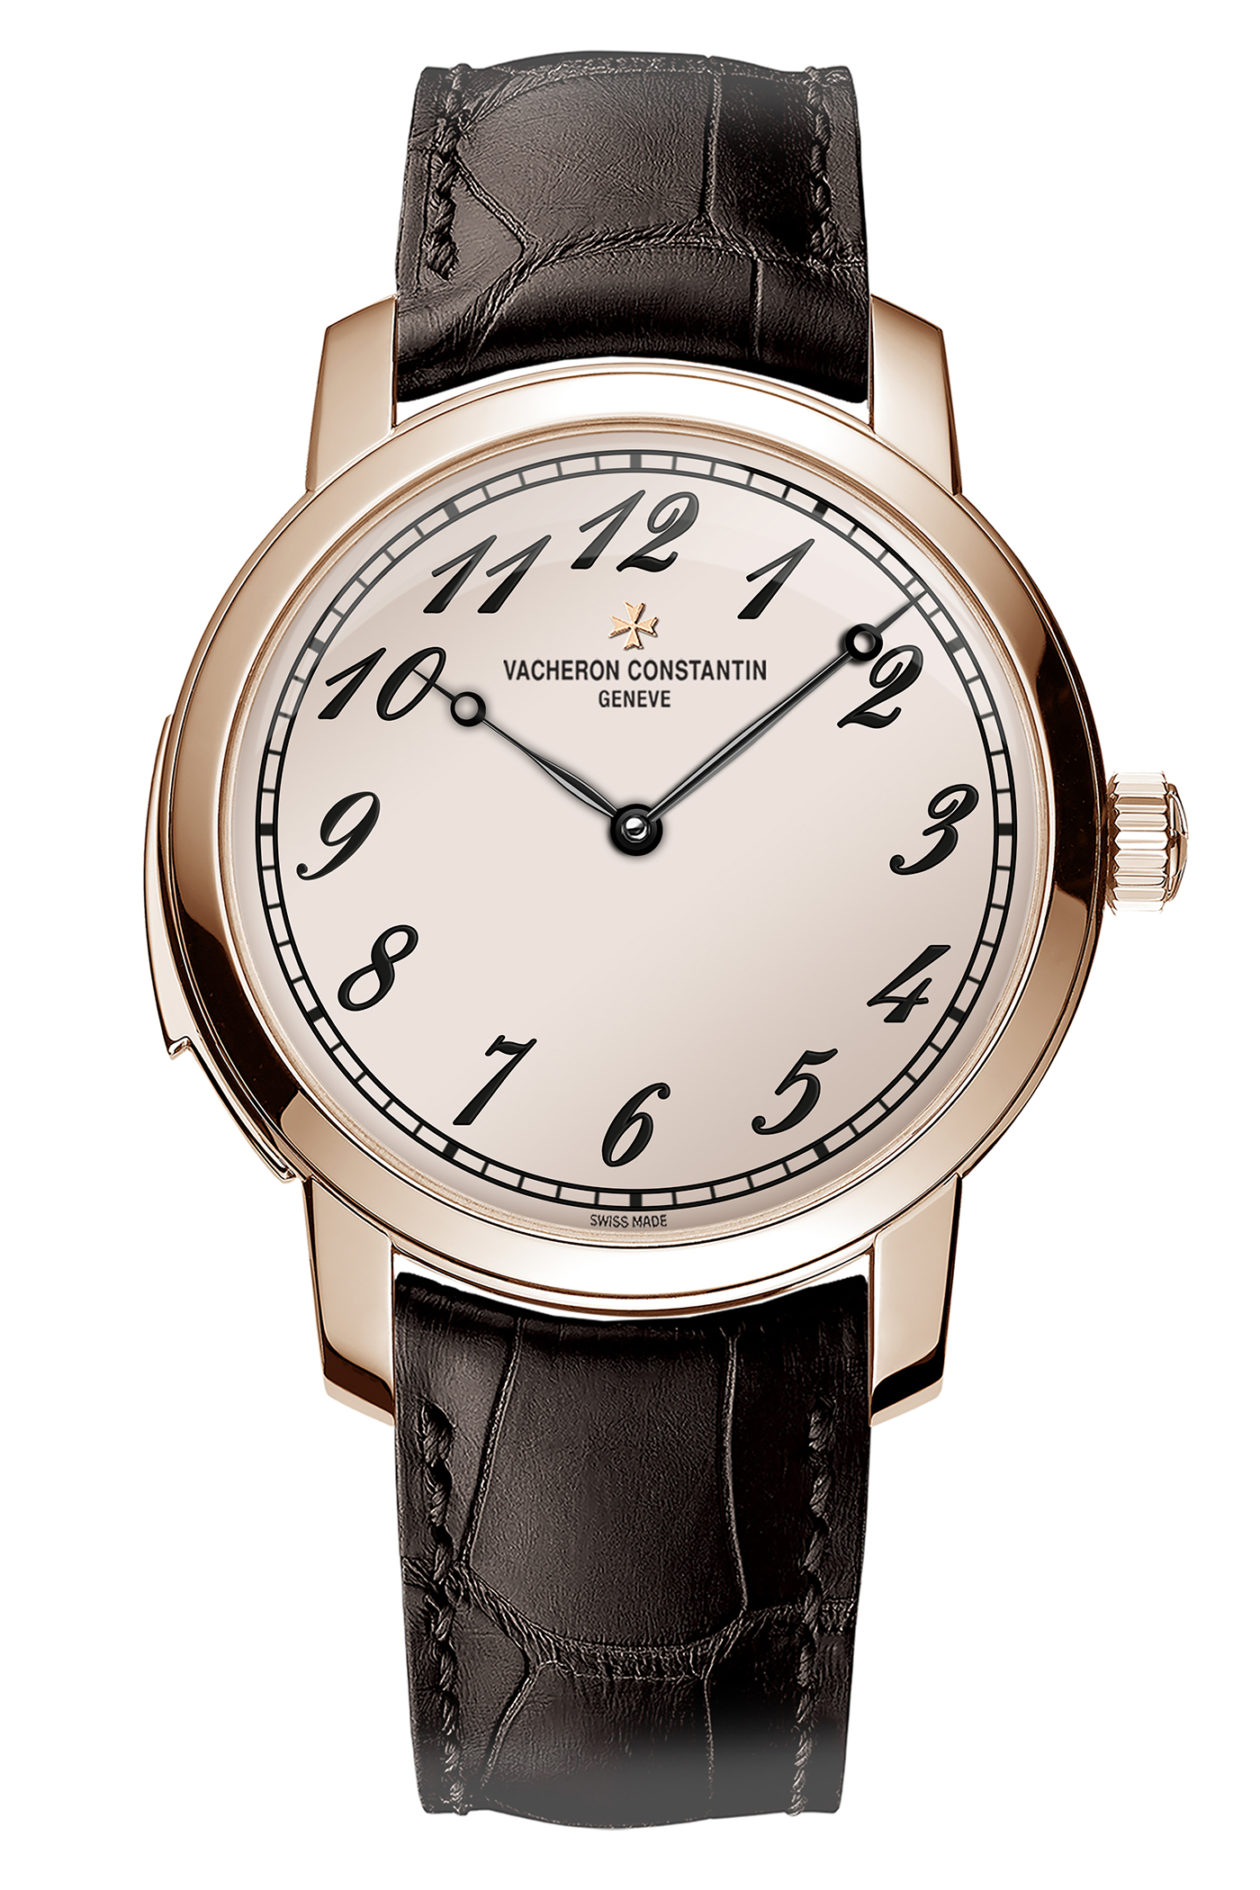 Vacheron Constantin Les Cabinotiers Minute Repeater Ultra-Thin – A Romantic Note